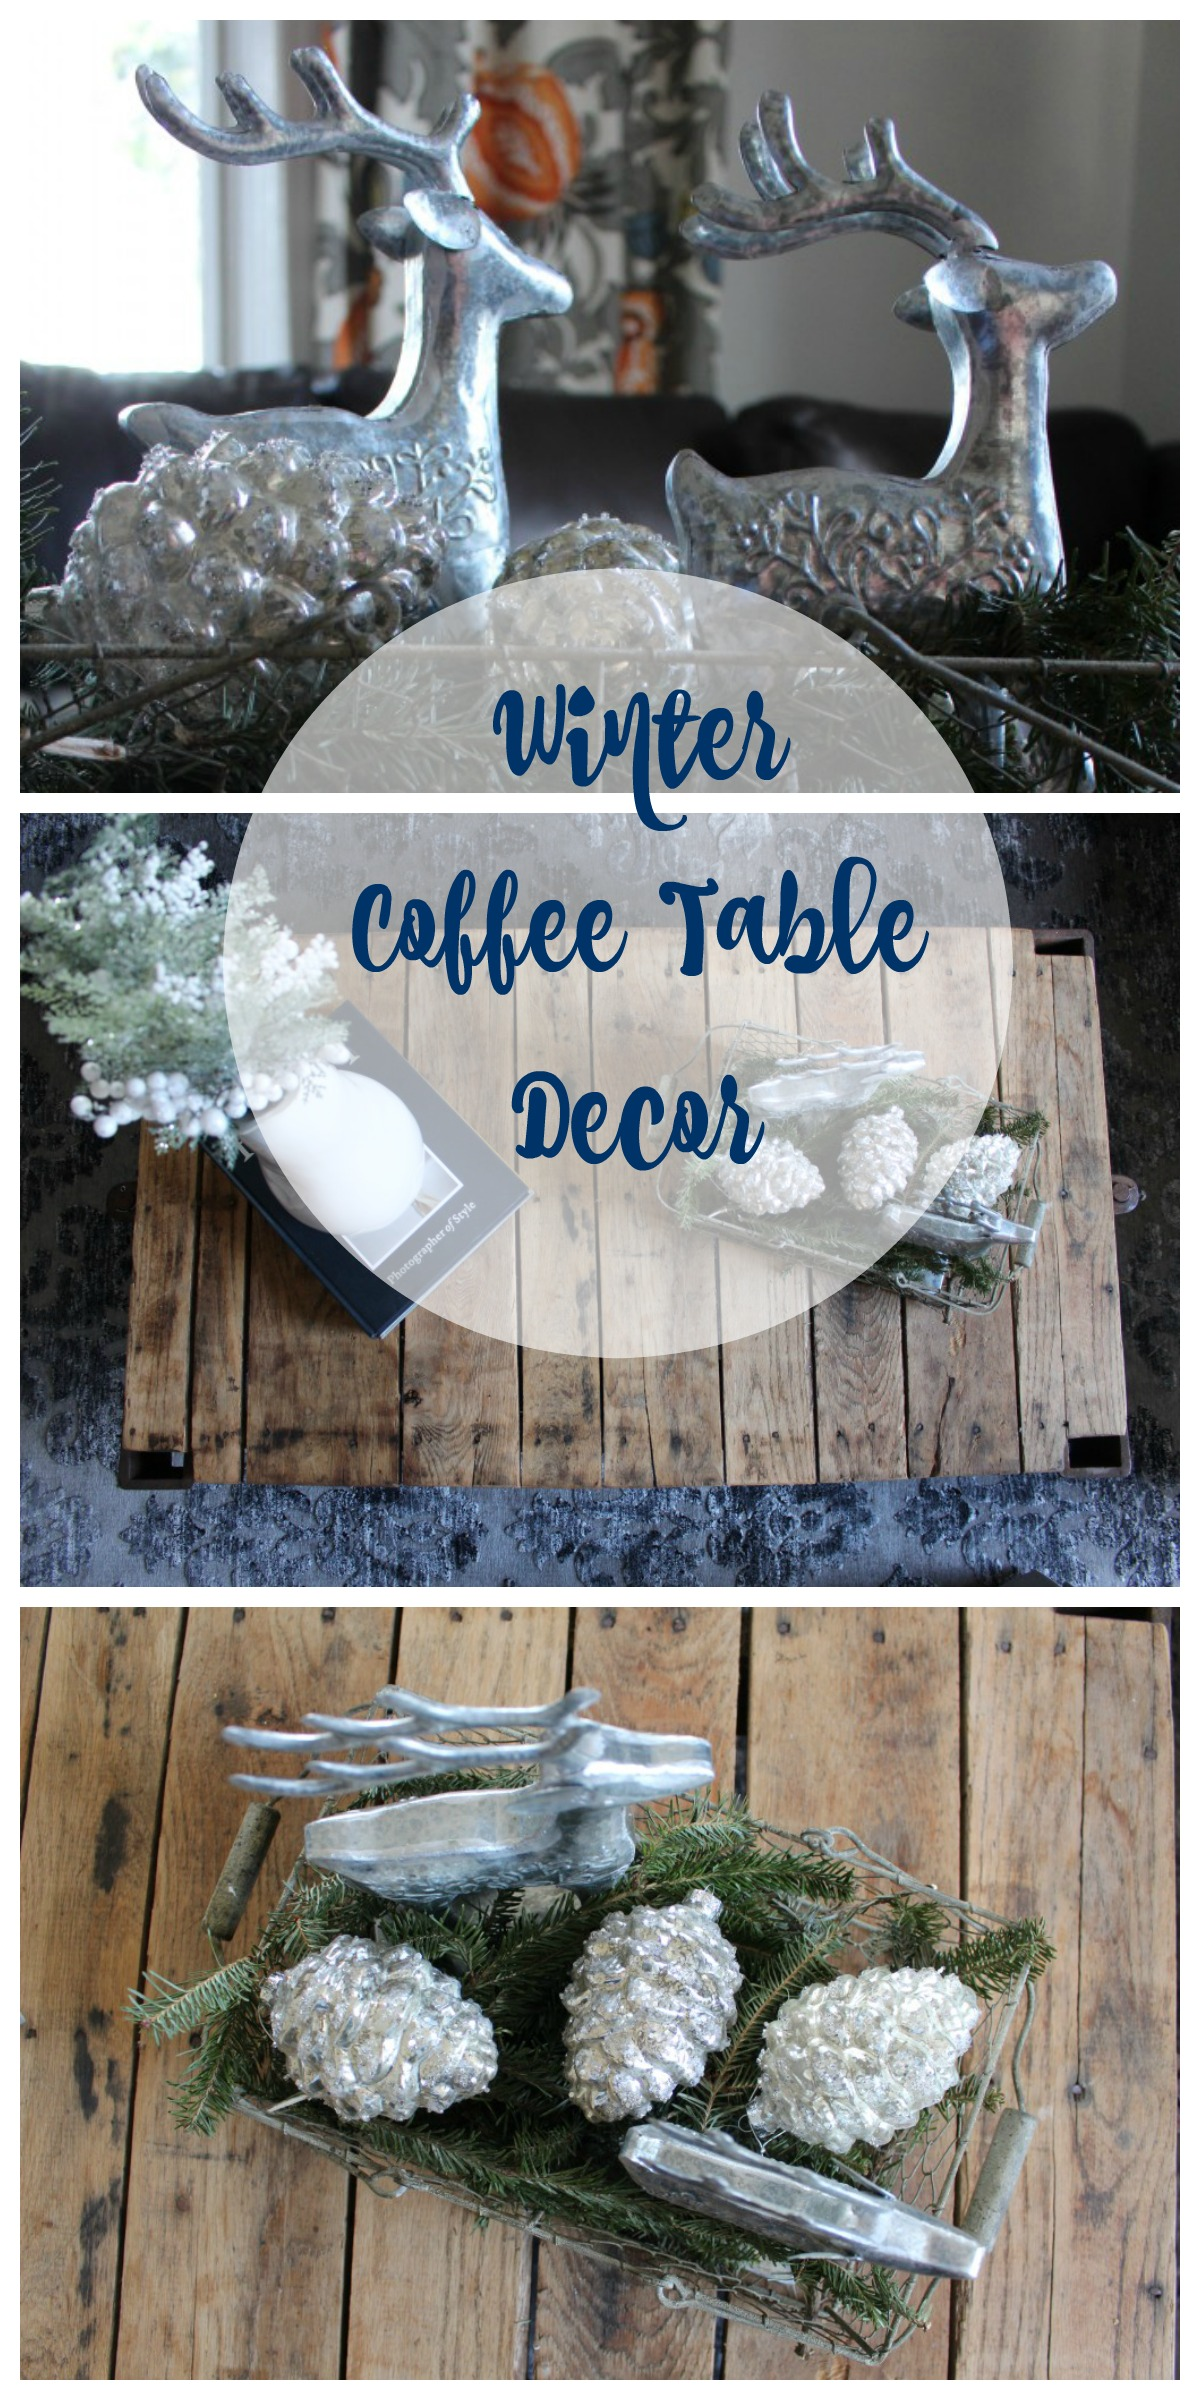 Winter-Coffee Table Decor by 2 Bees